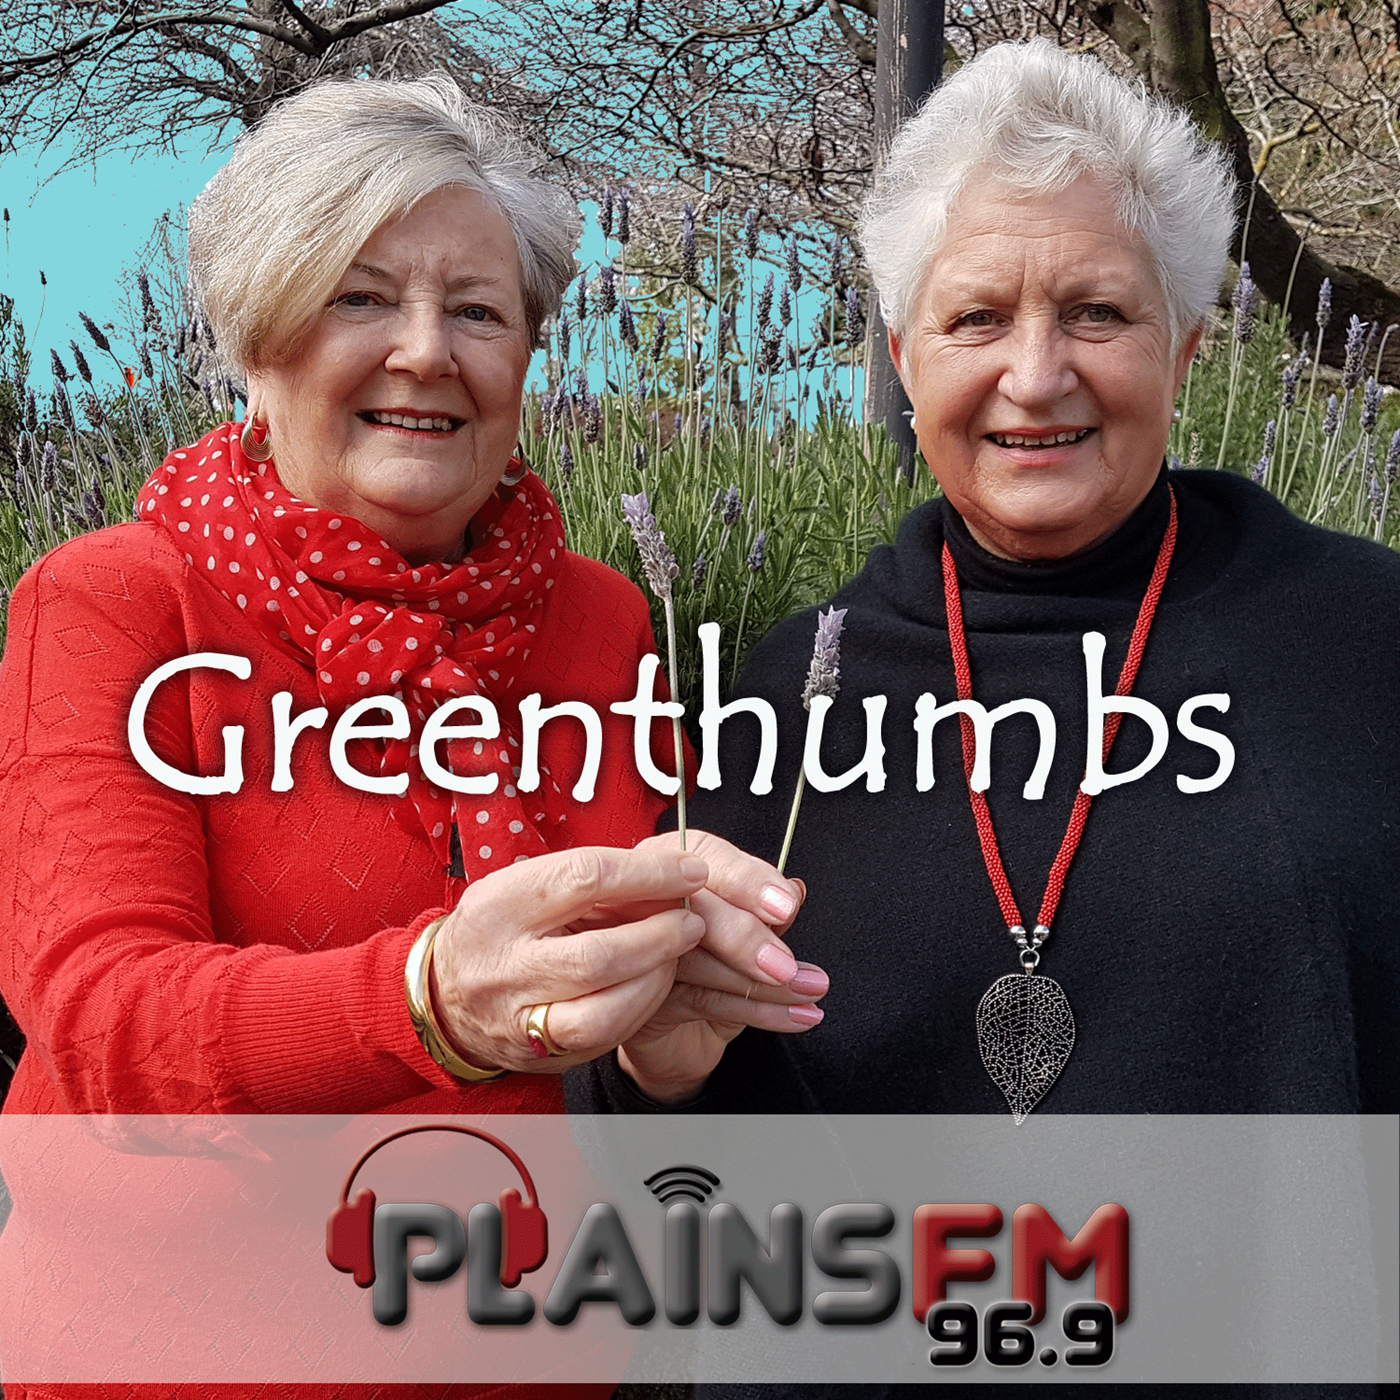 Greenthumbs in Canterbury-16-12-2019 Christine Blance